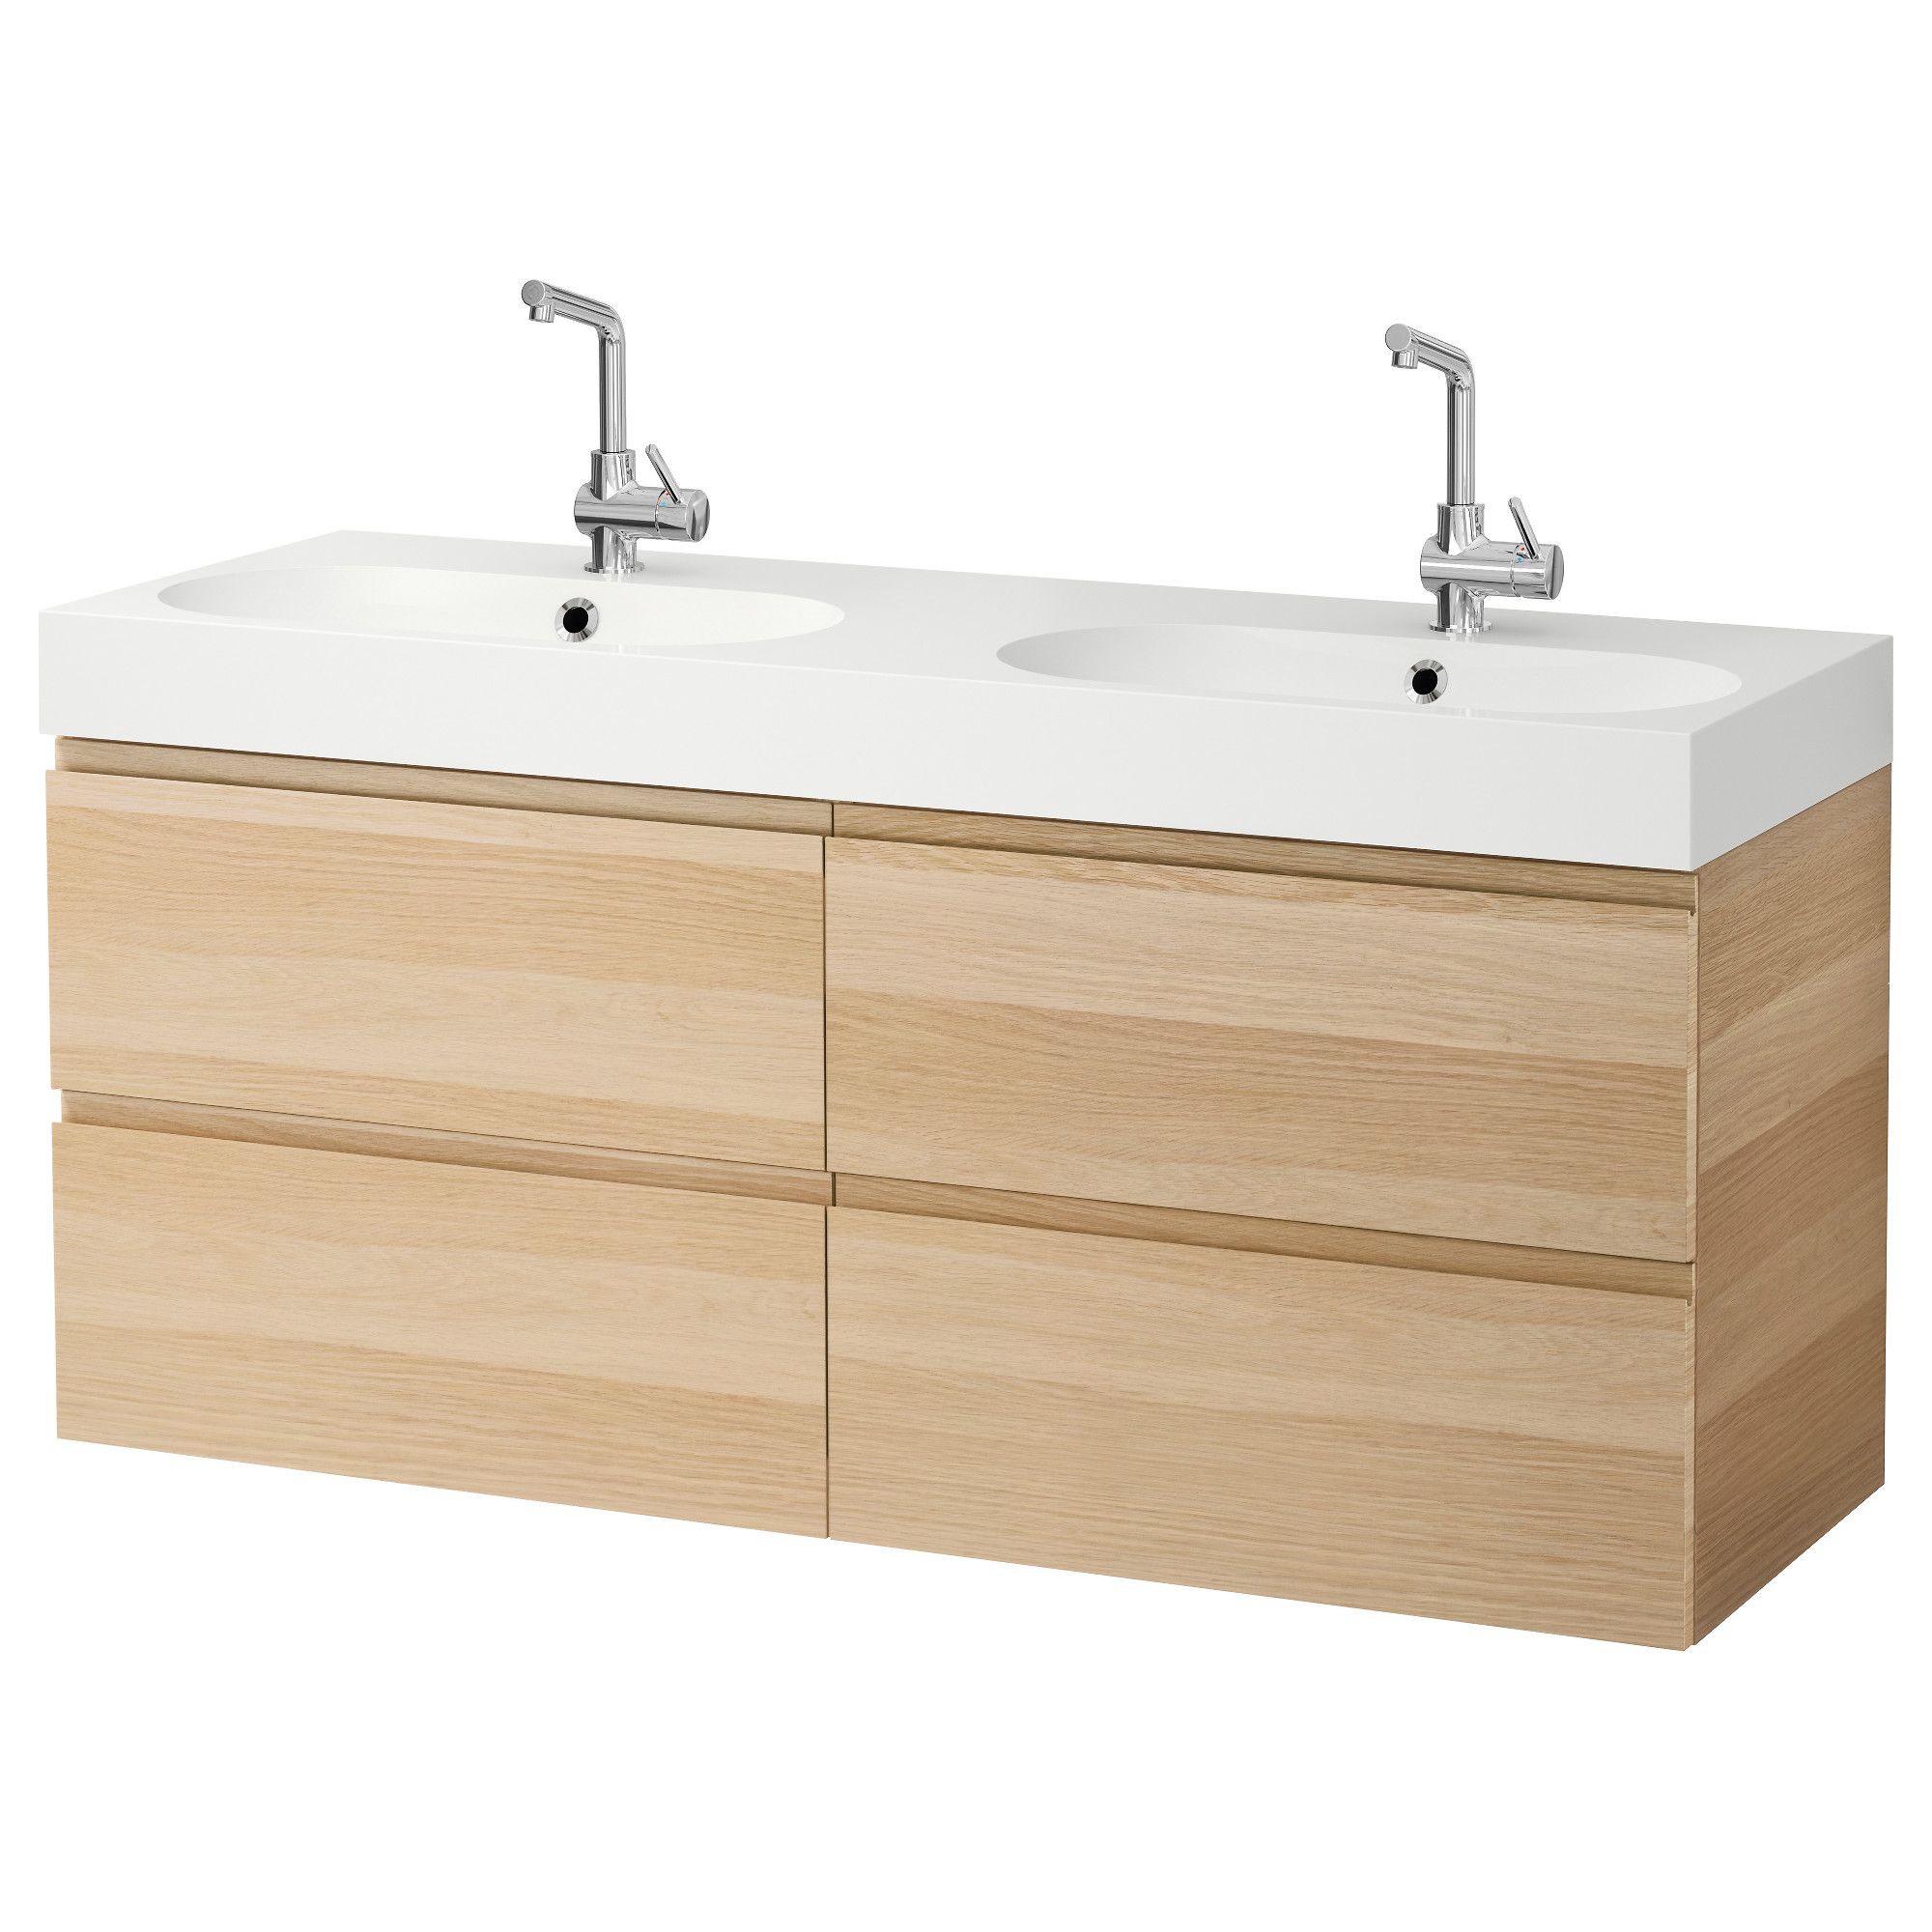 GODMORGON   BR VIKEN sink cabinet with 4 drawers  white stained oak white stained oak effect. Sink Cabinets   Bathroom   IKEA